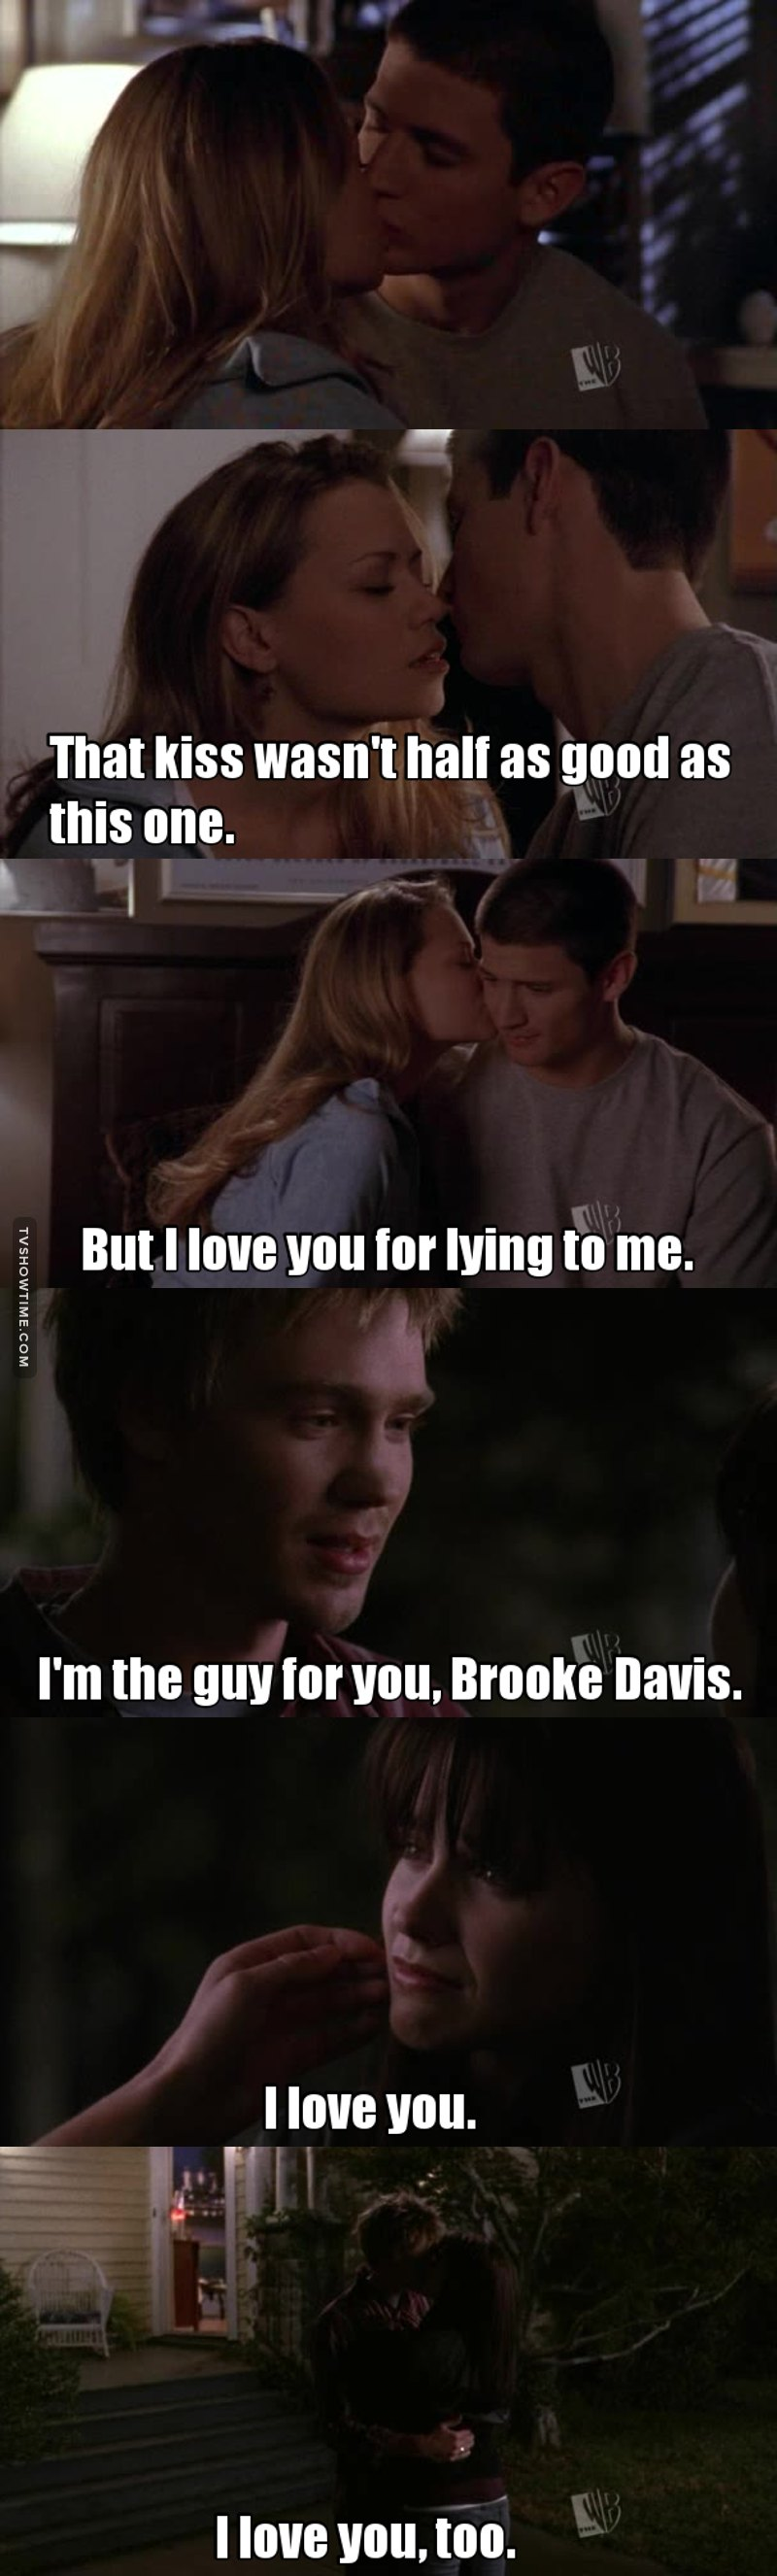 Despite Dan winning the election this episode was pretty awesome. I am really happy that my OTPs are finally back together, because it was becoming hard to watch all of them so heartbroken by being apart. Naley and Brucas love each other and they deserve to be happy. On the other hand, something got me curious, I can't wait to find out who helped Deb to try to kill Dan. I have my suspicious! Let's hope I'm wrong! 😱❤️